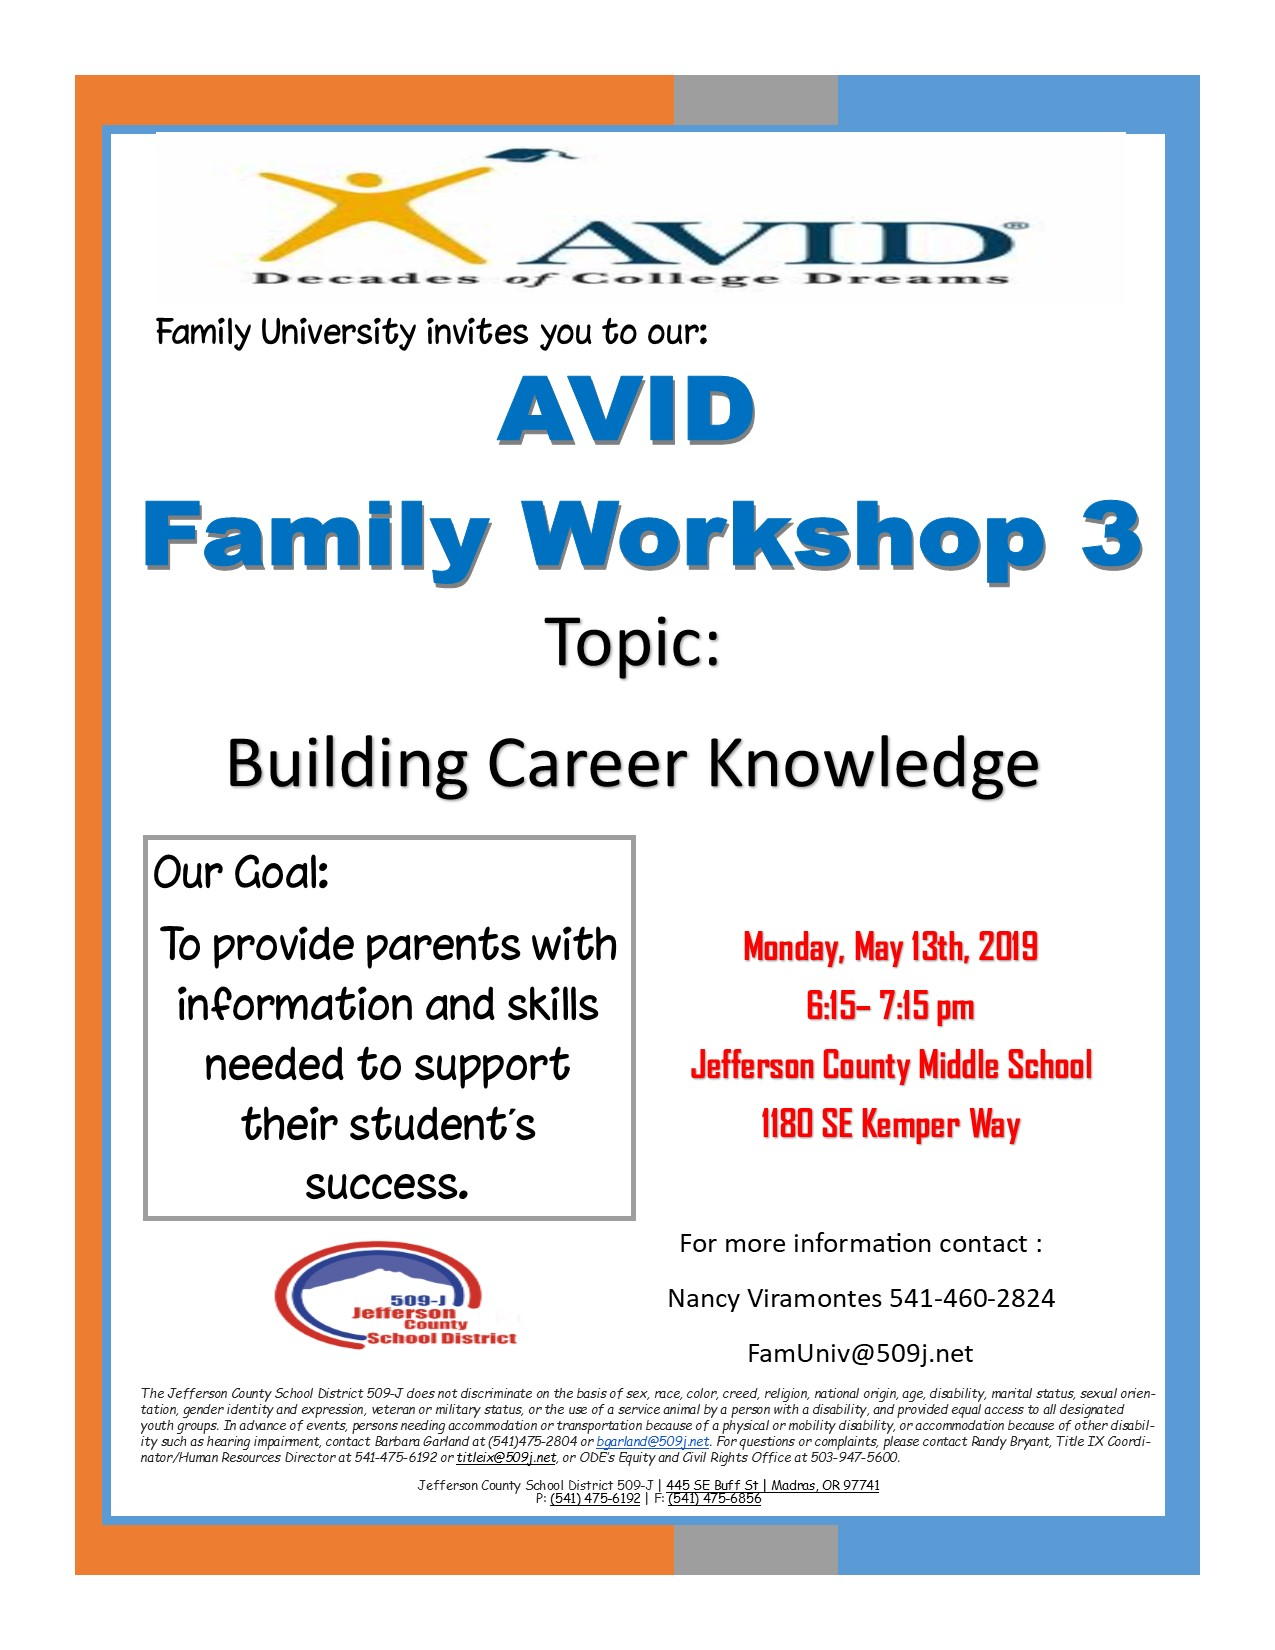 AVID Family Workshop 3 Flyer